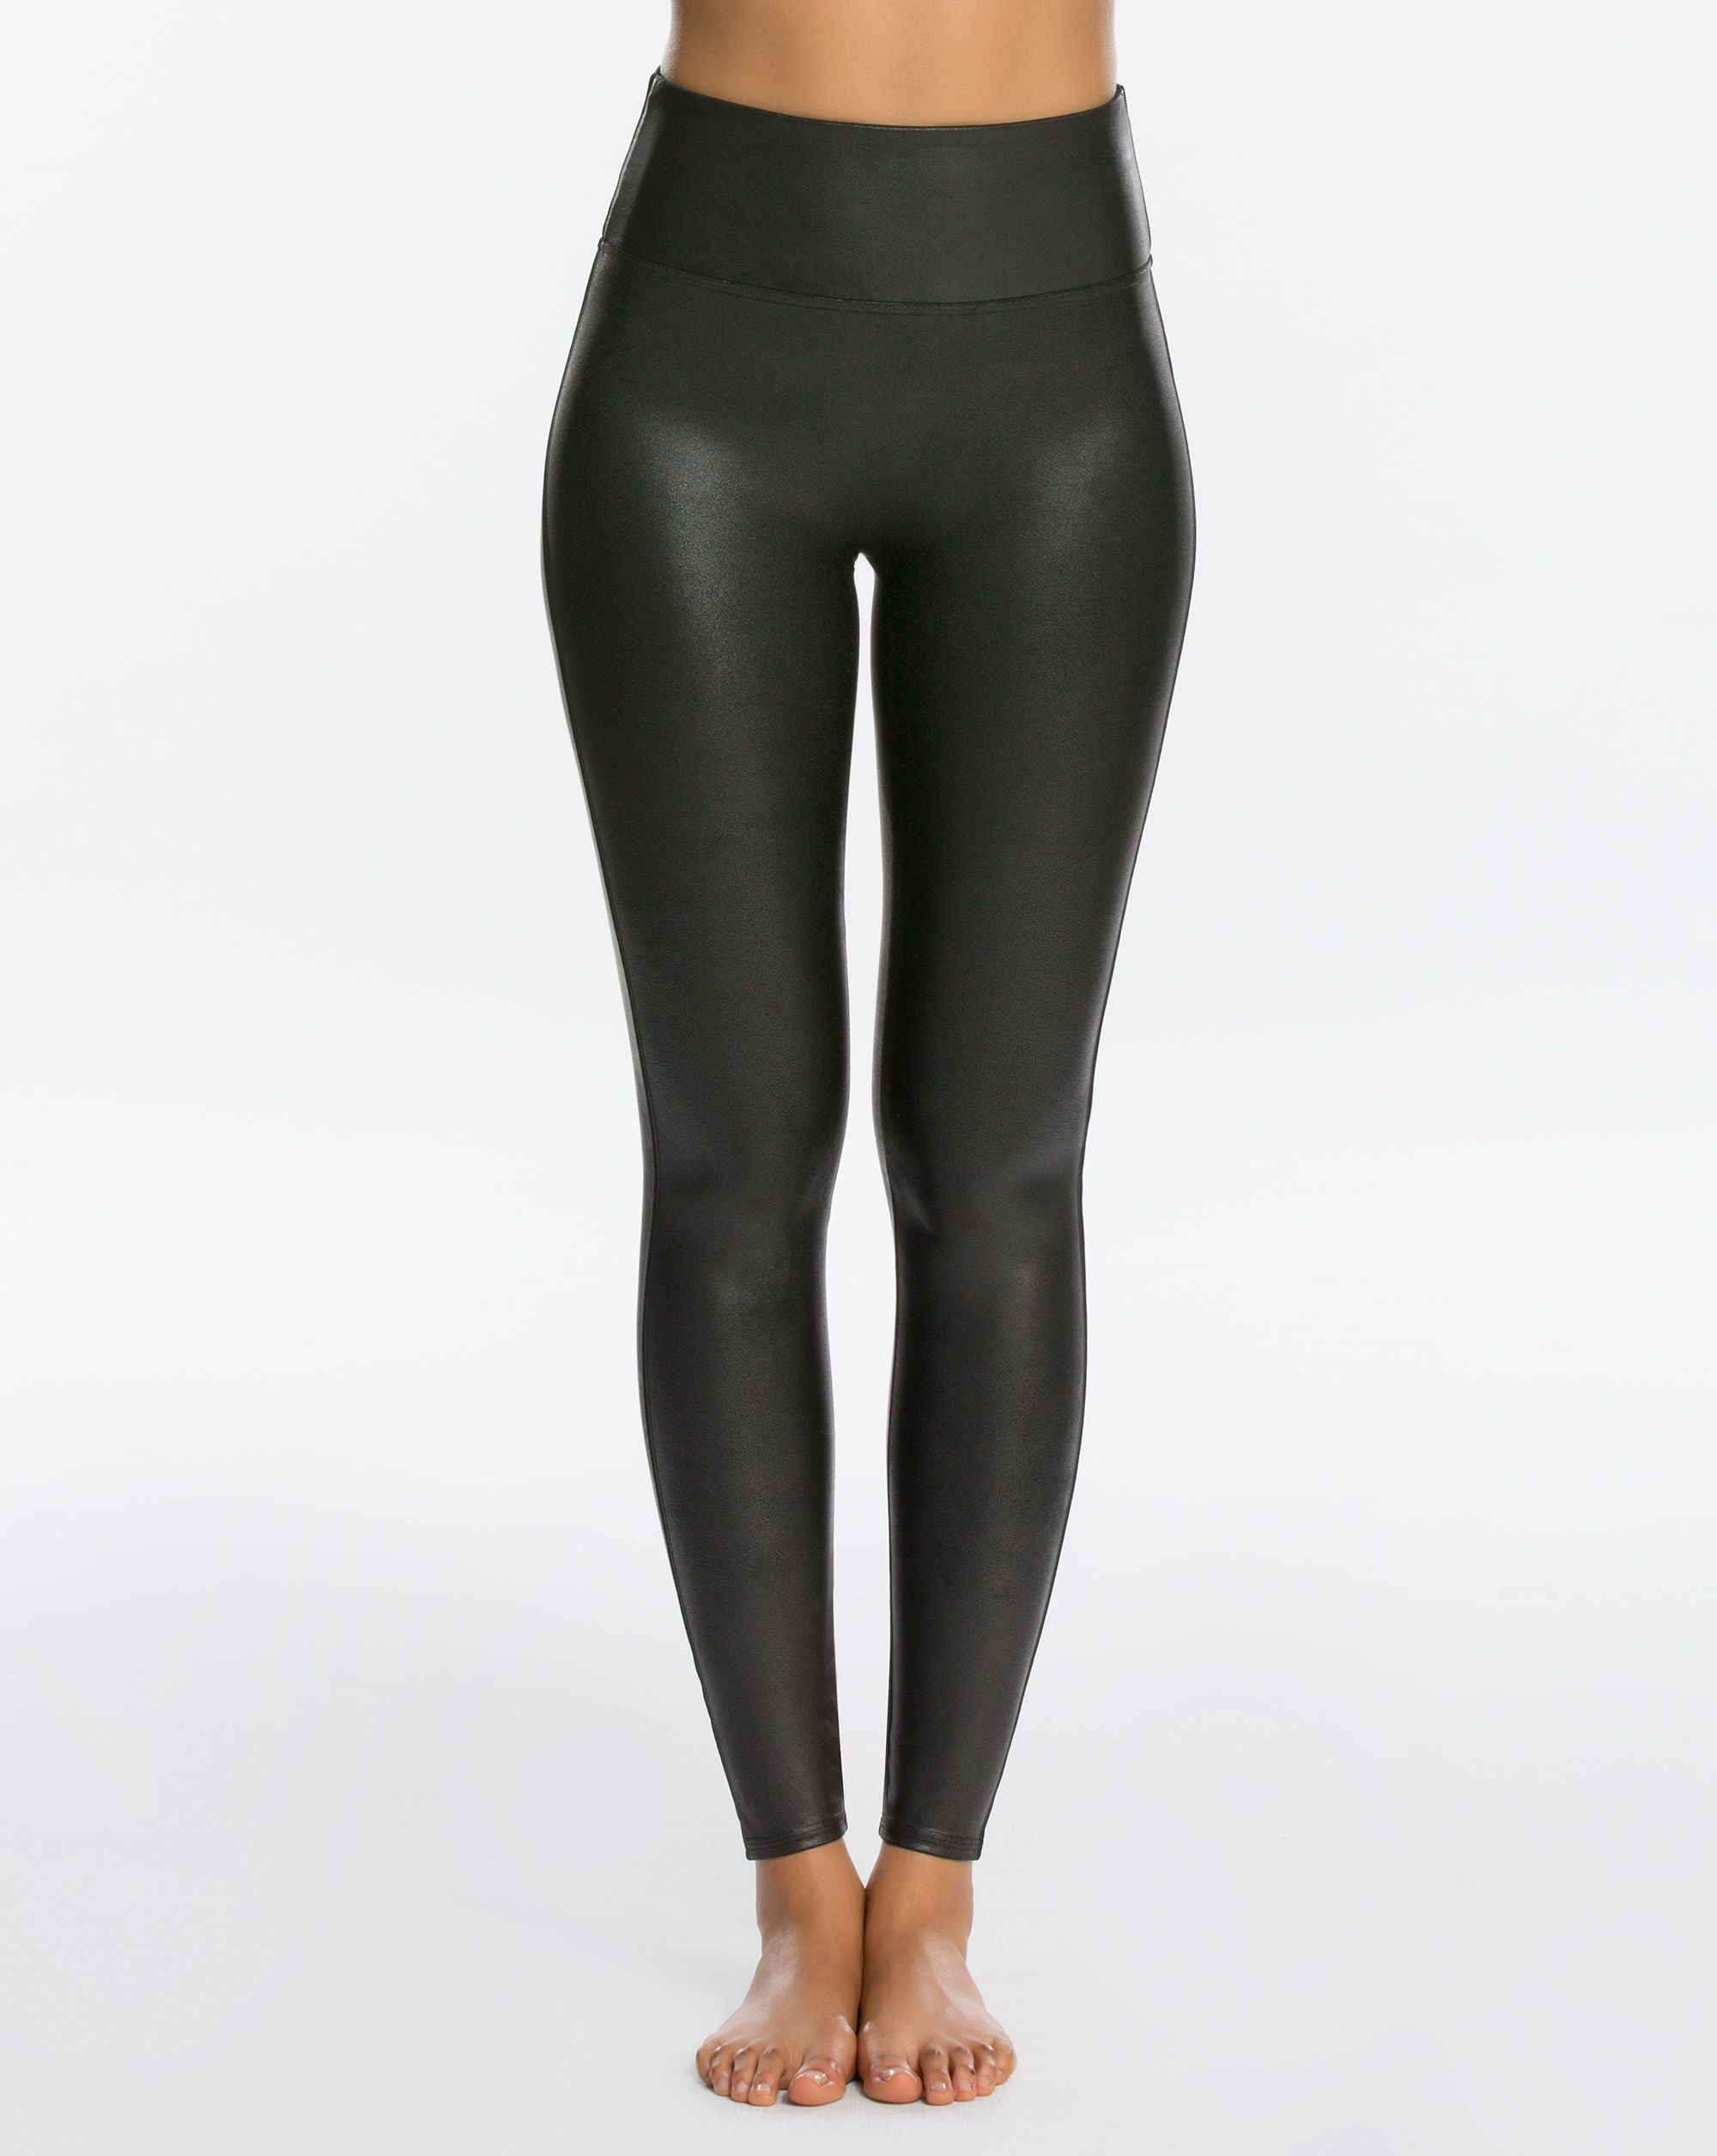 PETITE Faux Leather Leggings Black